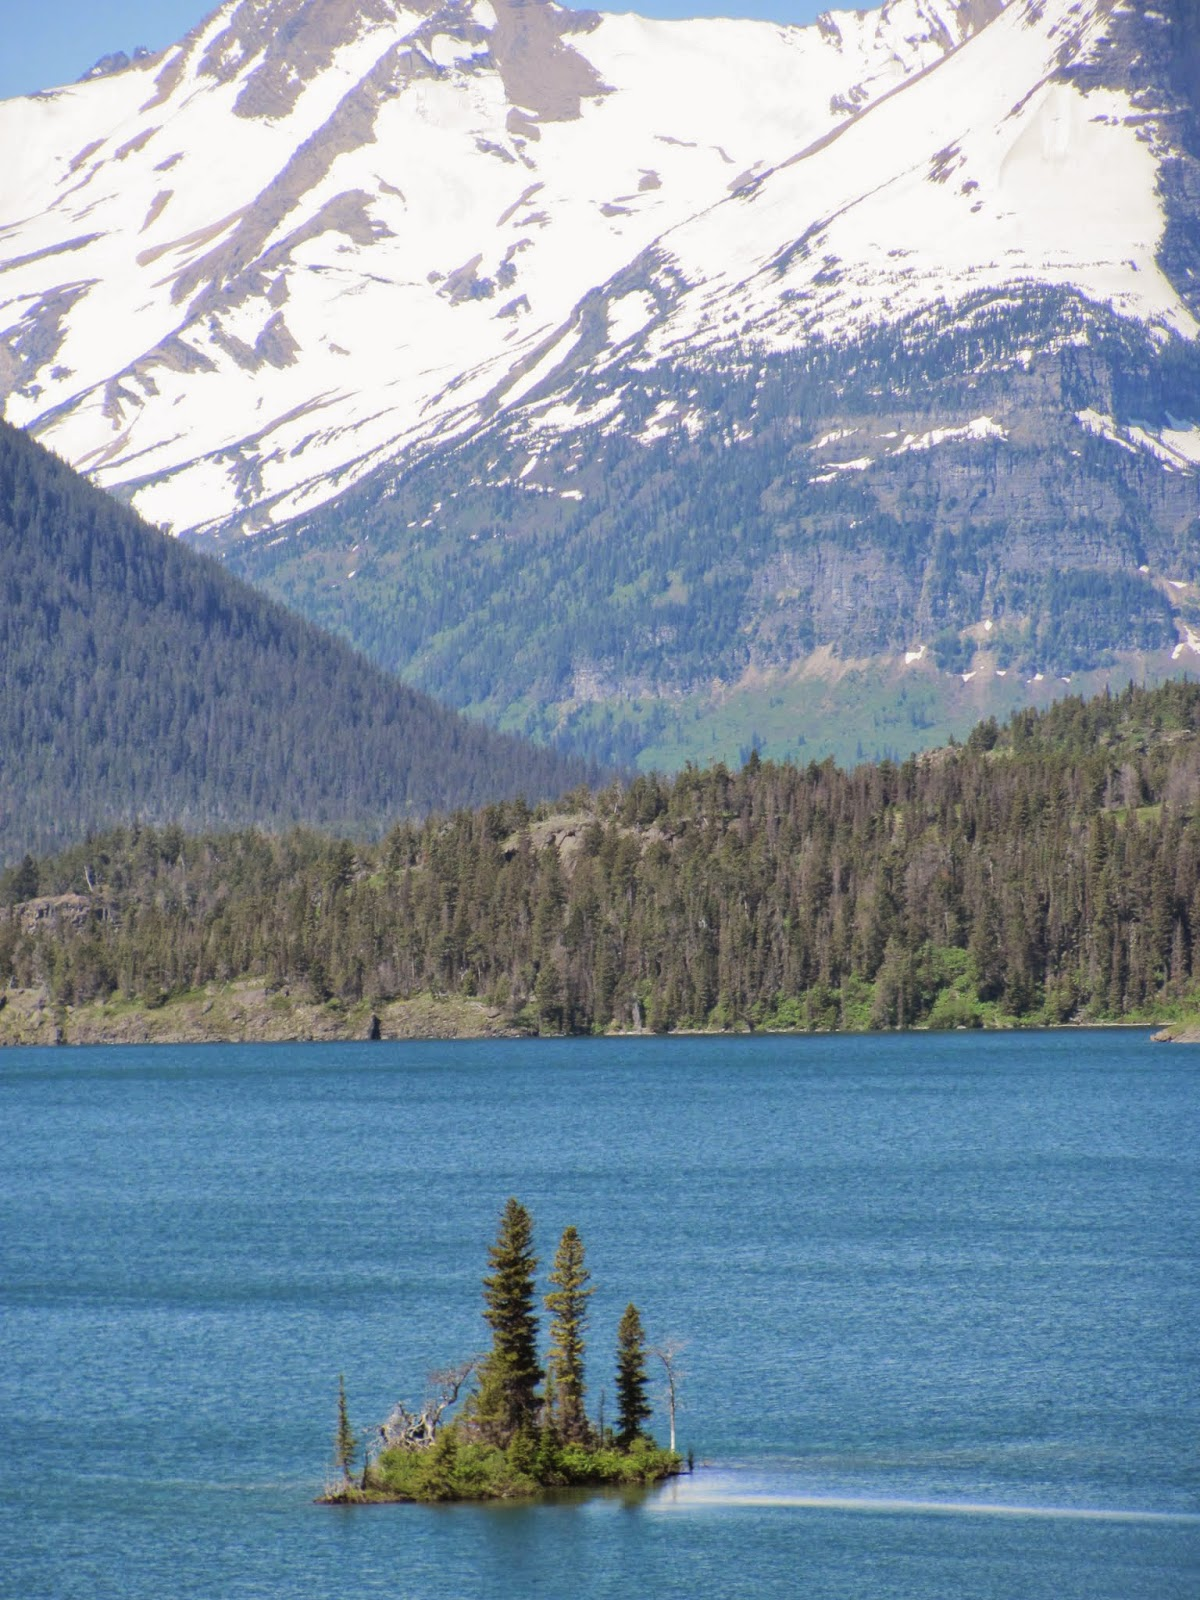 Lone Goose Island stands out on the surface of St. Mary Lake at Glacier National Park in Montana